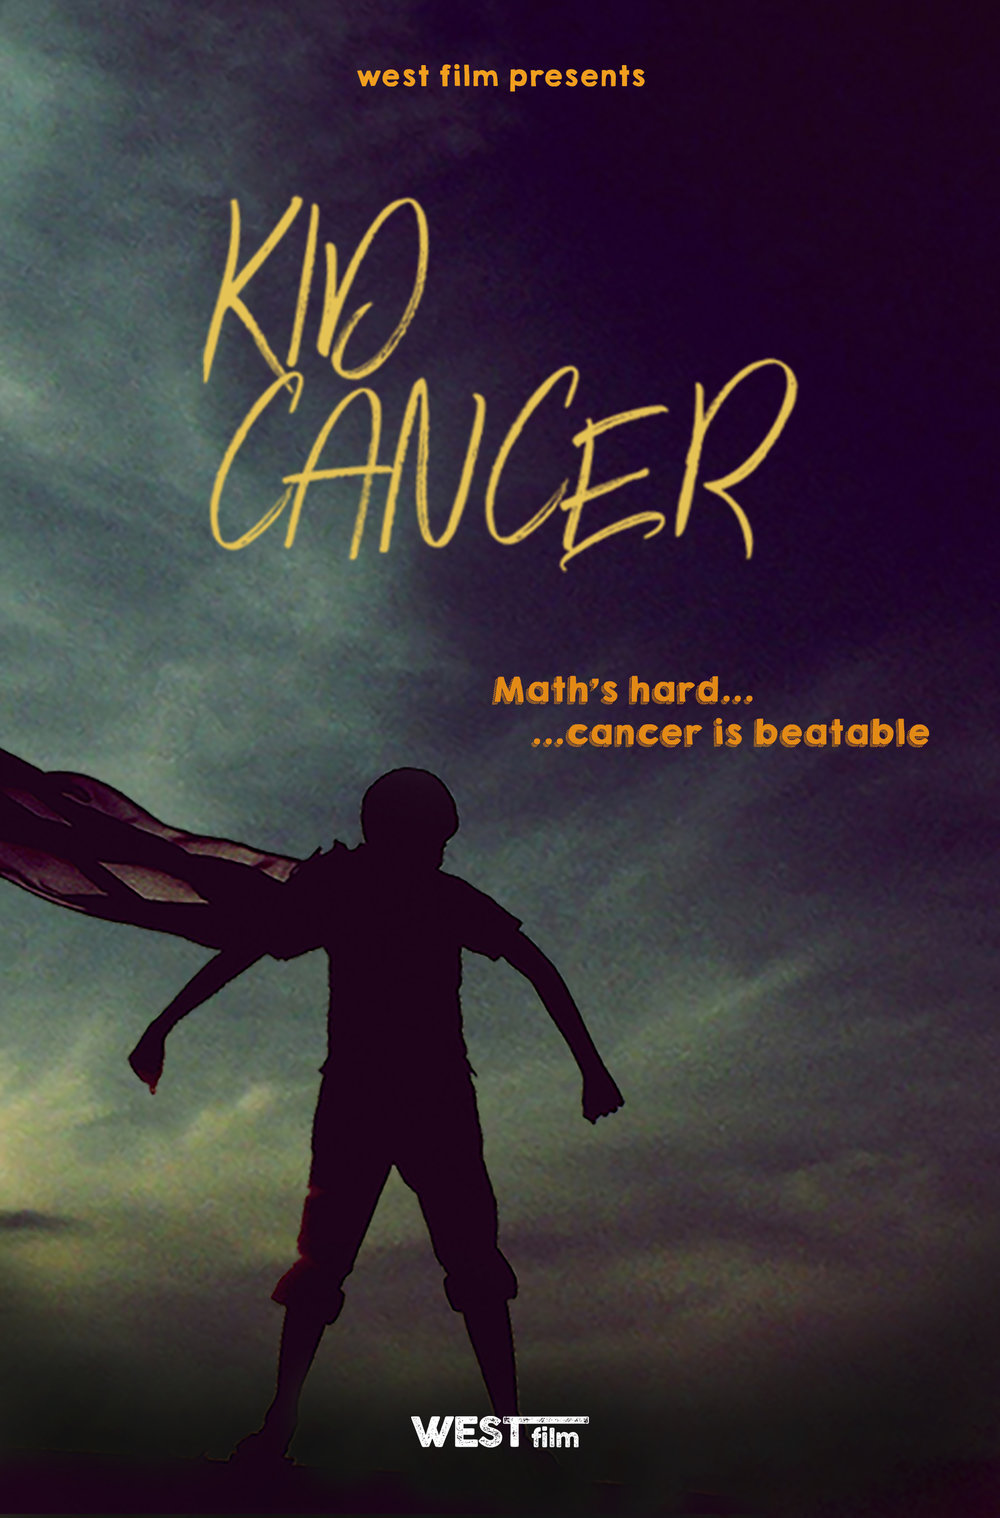 Kid Cancer  - Drama (Feature Length)Written By: Dan SlaterBudget Range: 5MAn 11 year old boy battling Leukemia falls in love and gains the courage to fight his cancer in a cartoon dream world he creates in his imagination.